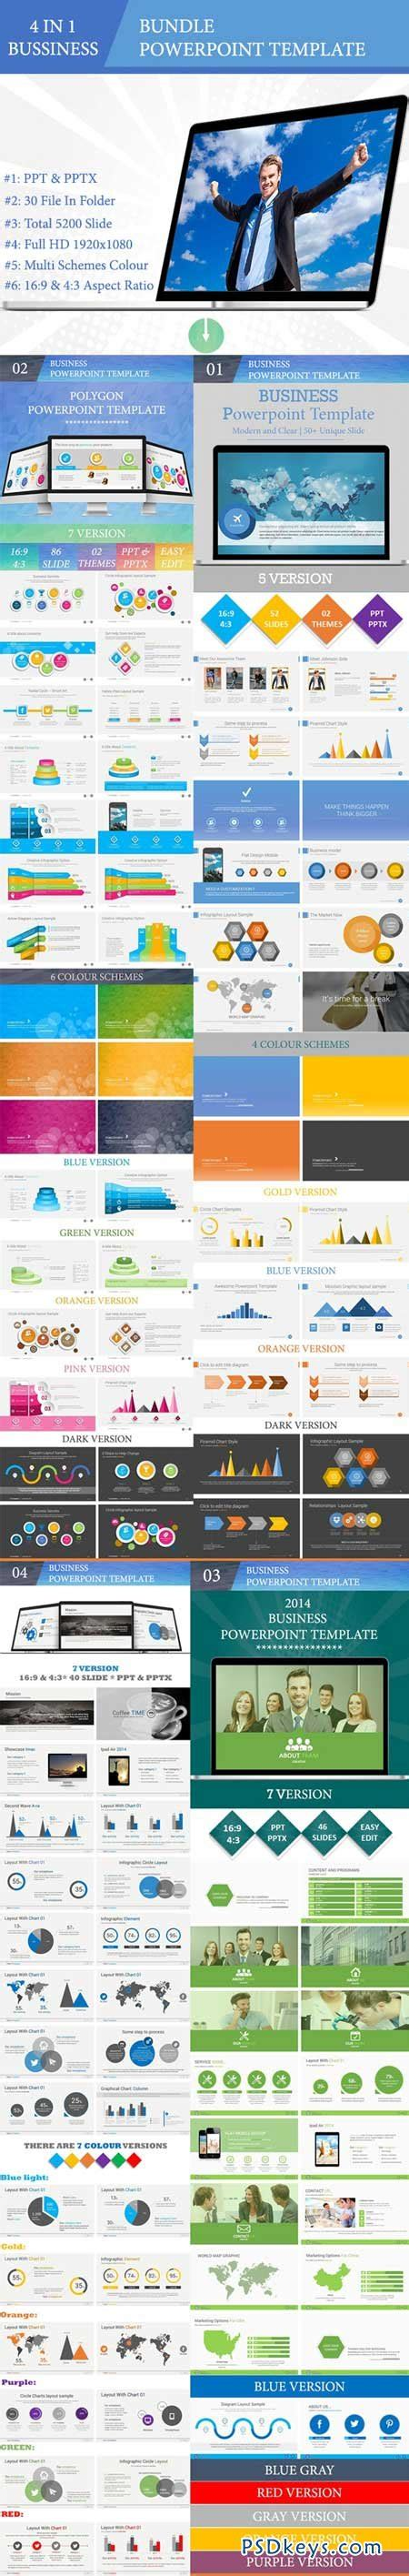 Template Powerpoint 4 In 1 Business Powerpoint Bundle bundle 4 in 1 business powerpoint templates 9013192 187 free